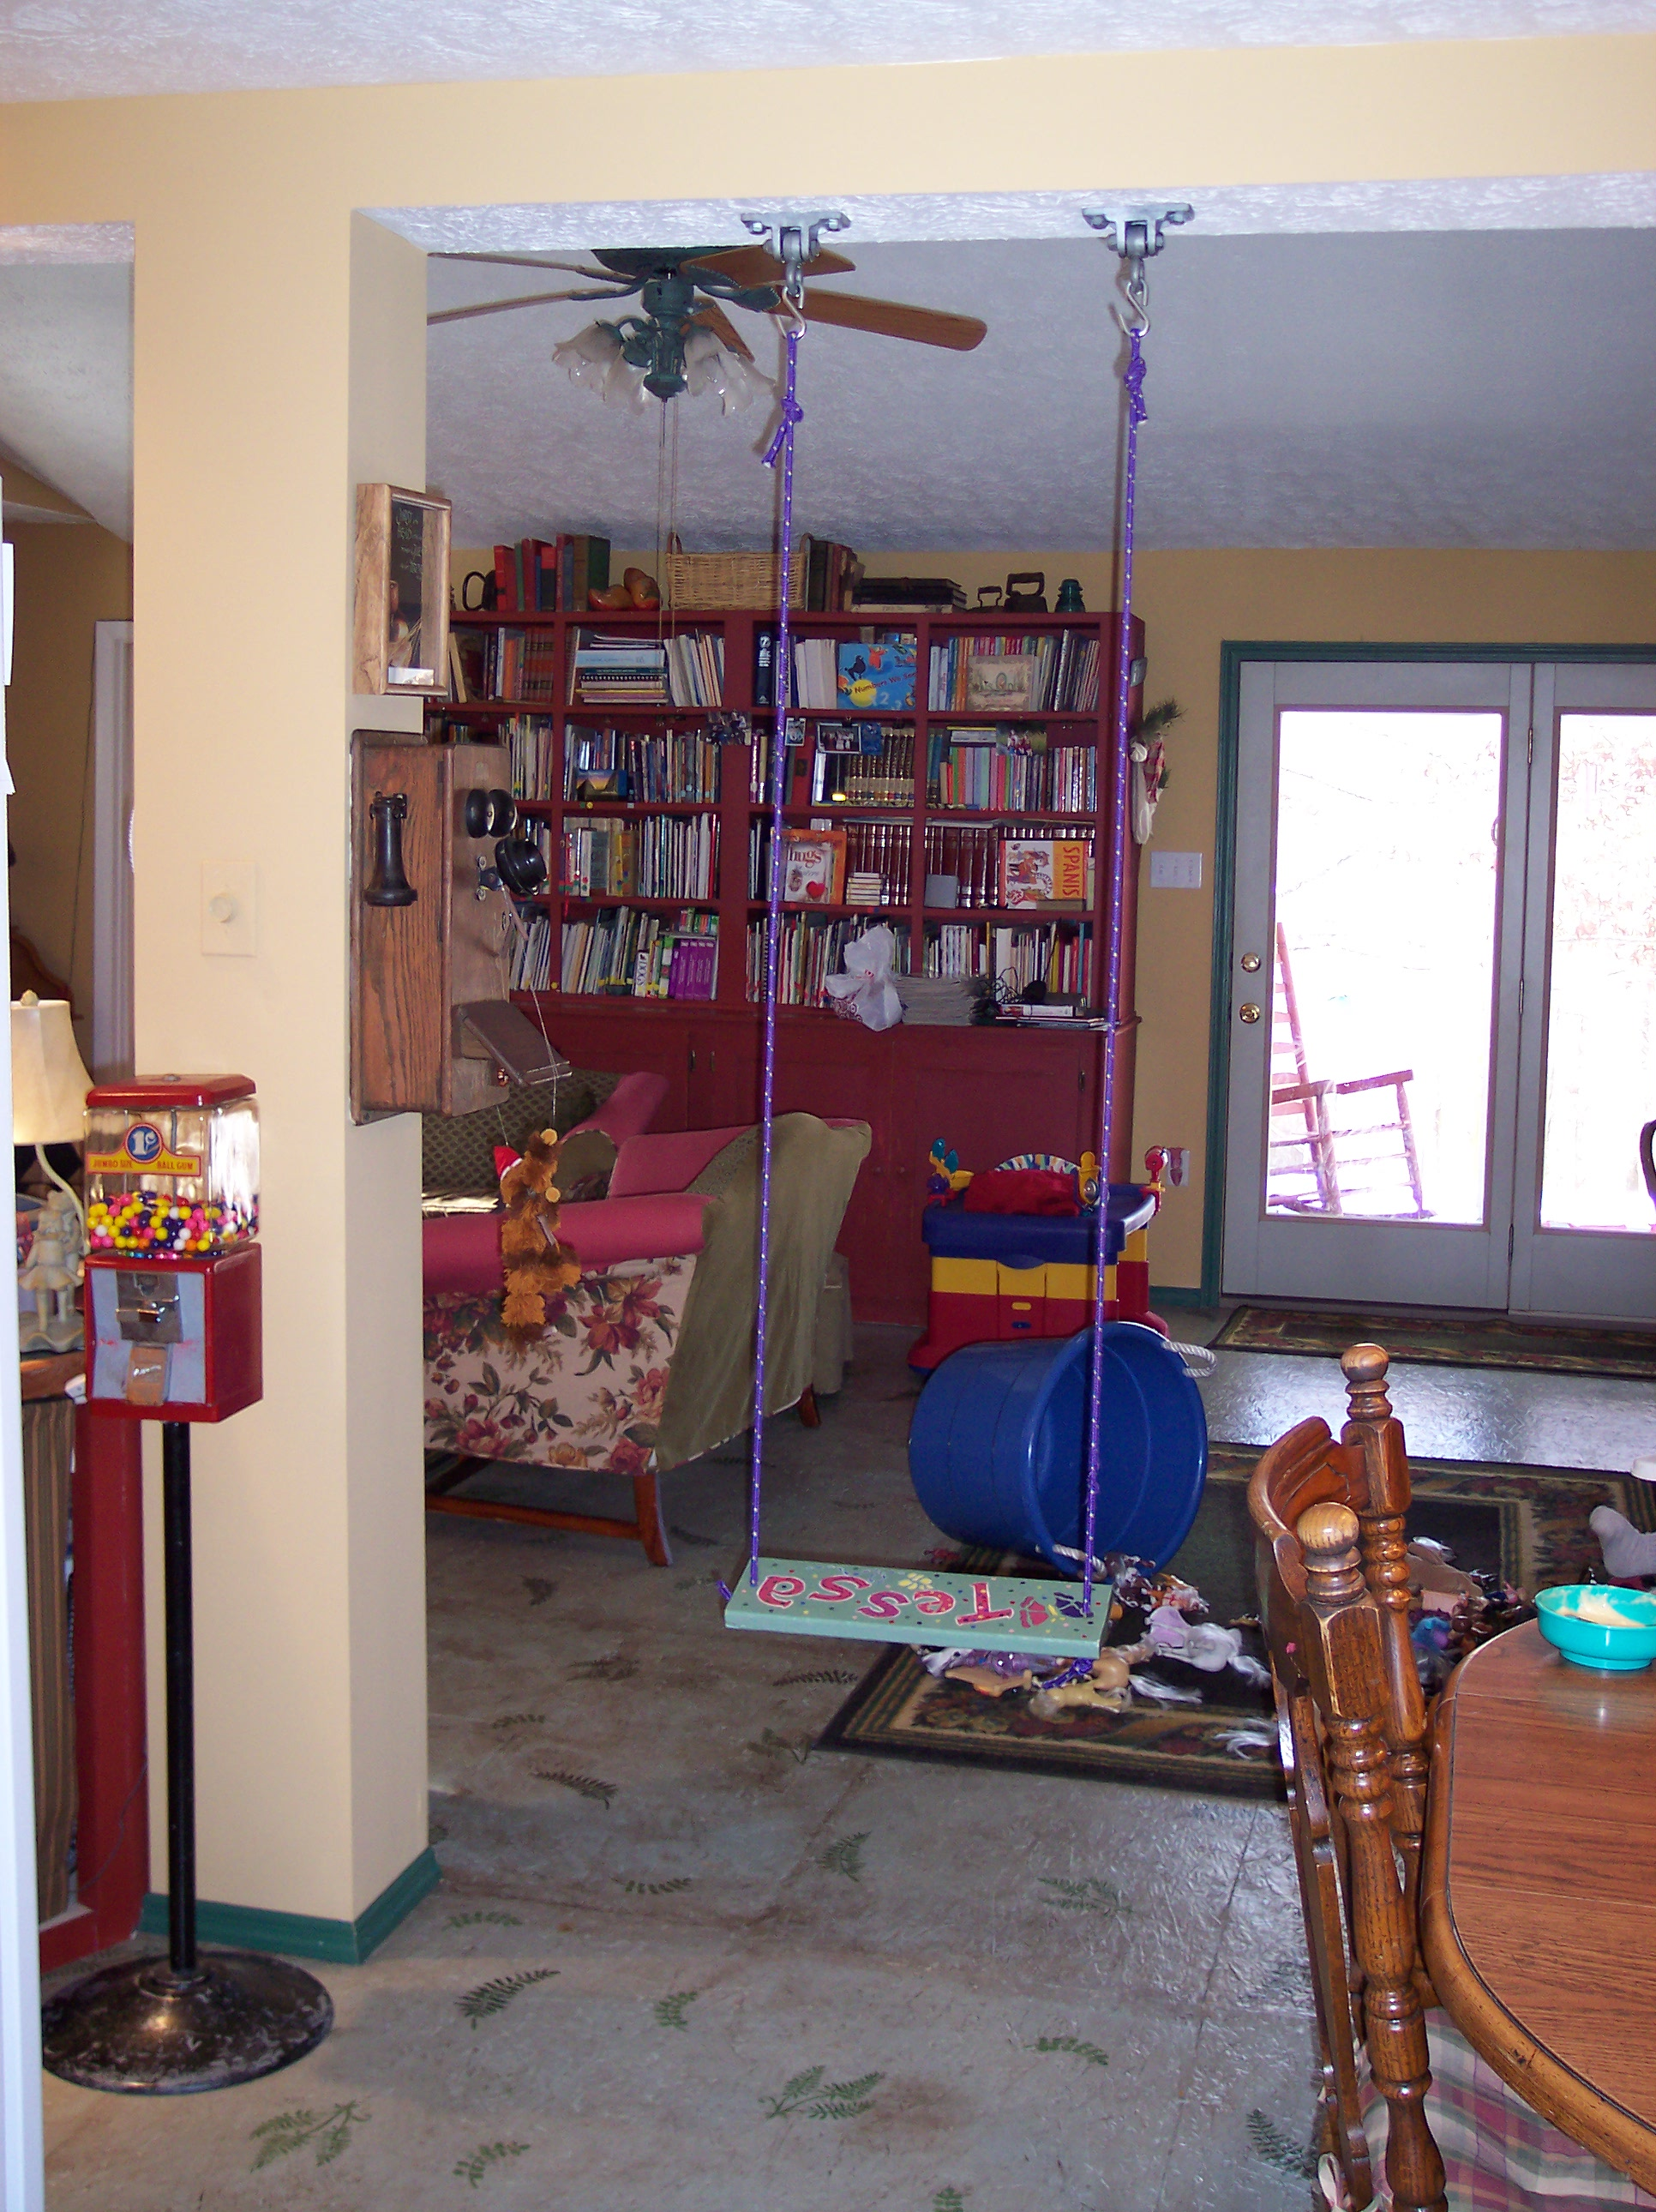 the swing in the kitchen AND THE PAINTED OSB FLOORS